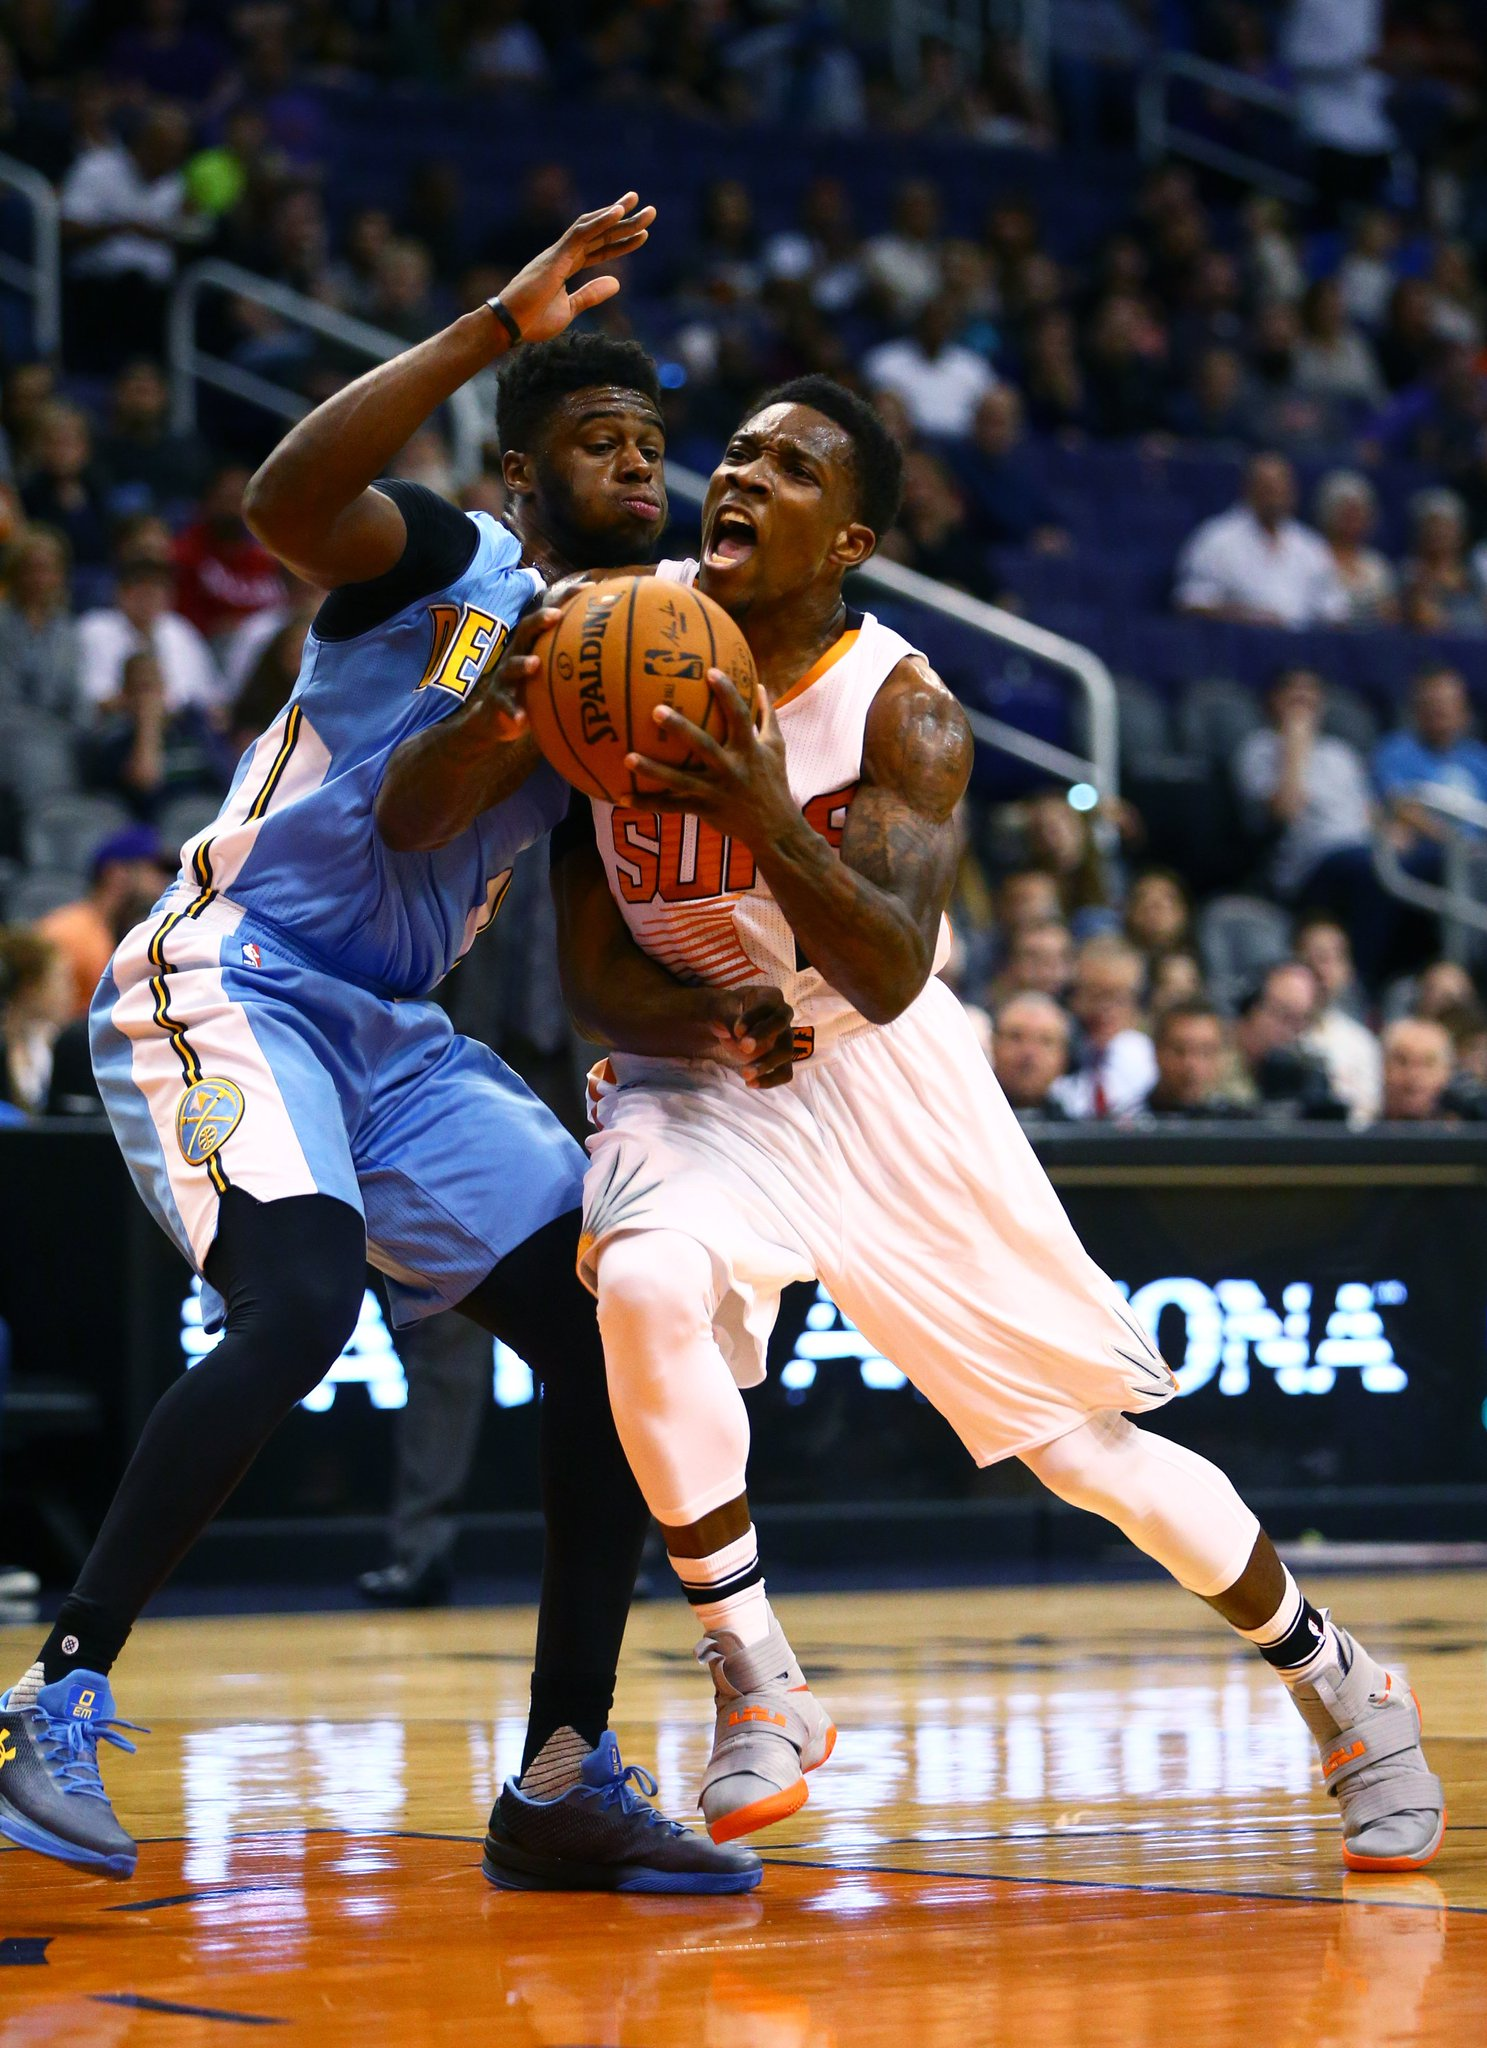 Suns and Nuggets have discussed a Bledsoe-Mudiay trade, per @MikeAScotto https://t.co/kSKRRDZyU3 https://t.co/bAH9zfkWuN